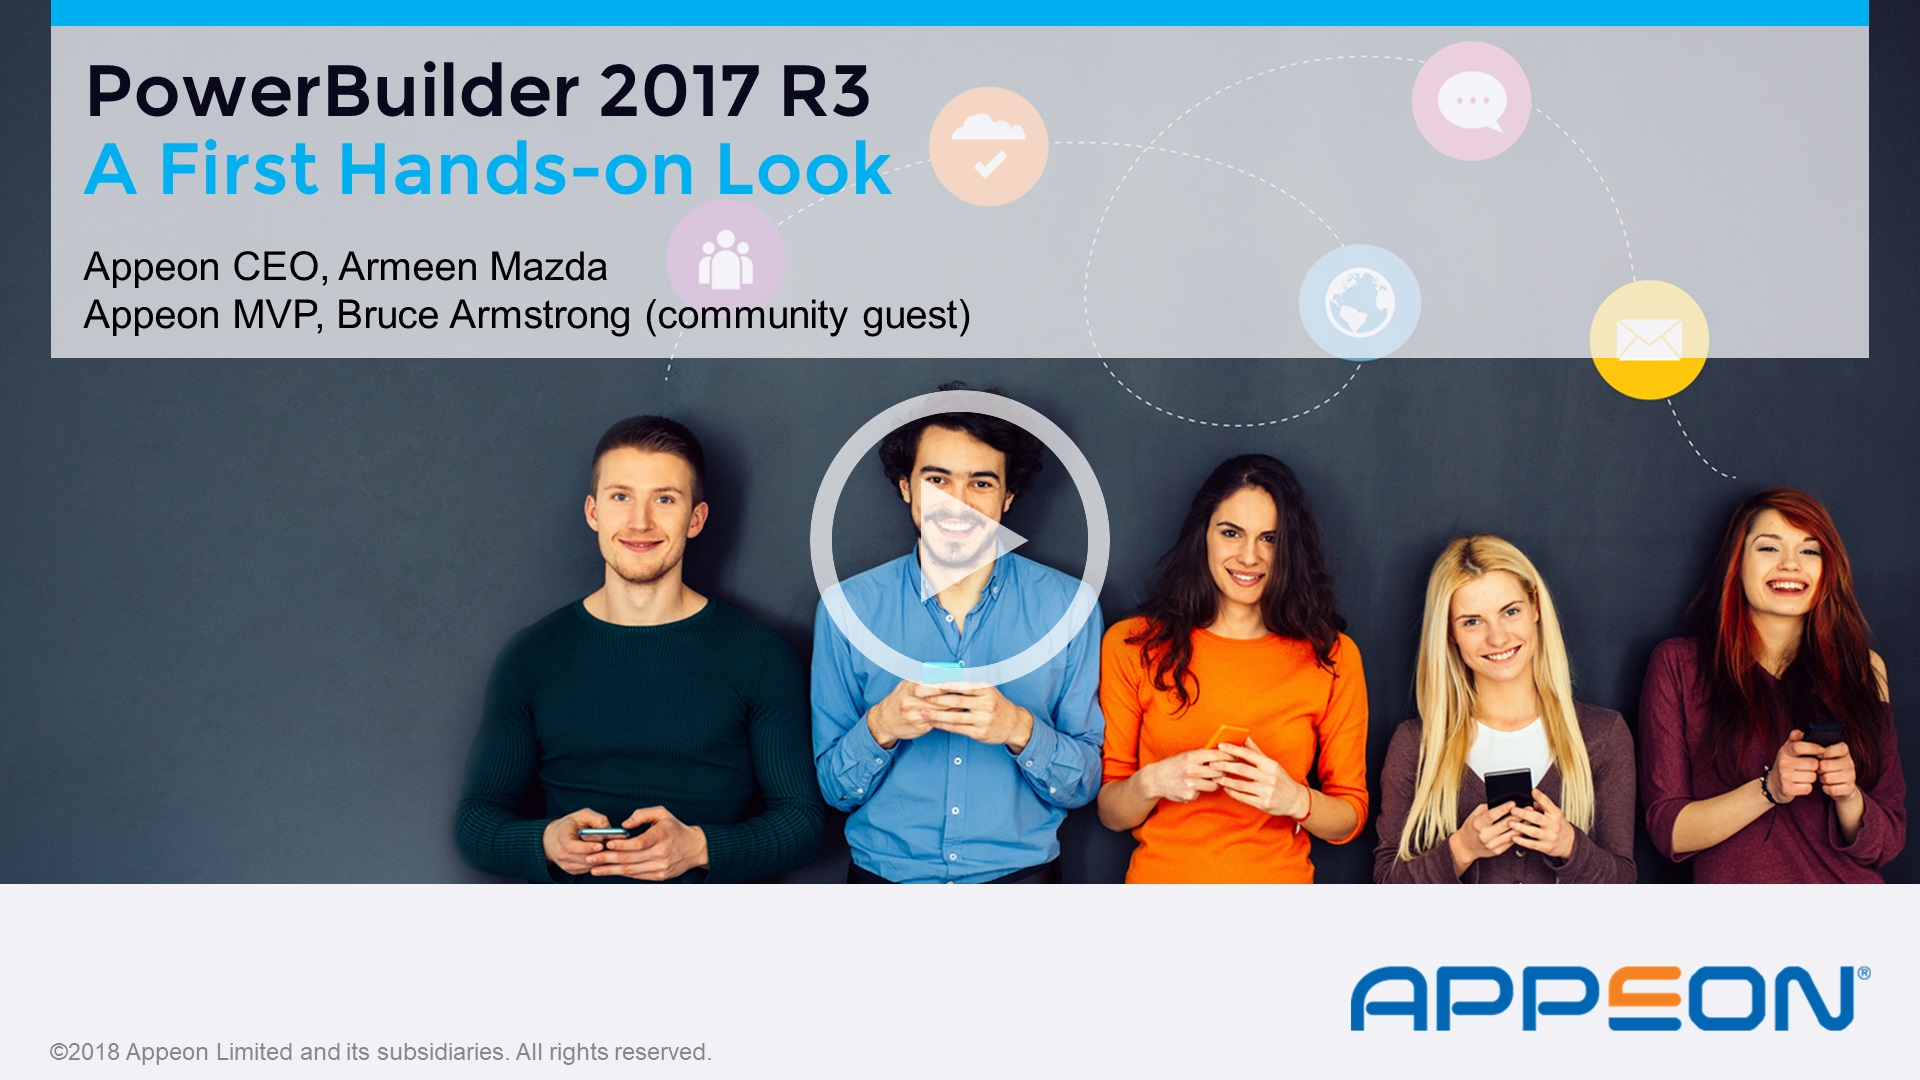 Recorded Webcast: Hands-on Look at PowerBuilder 2017 R3